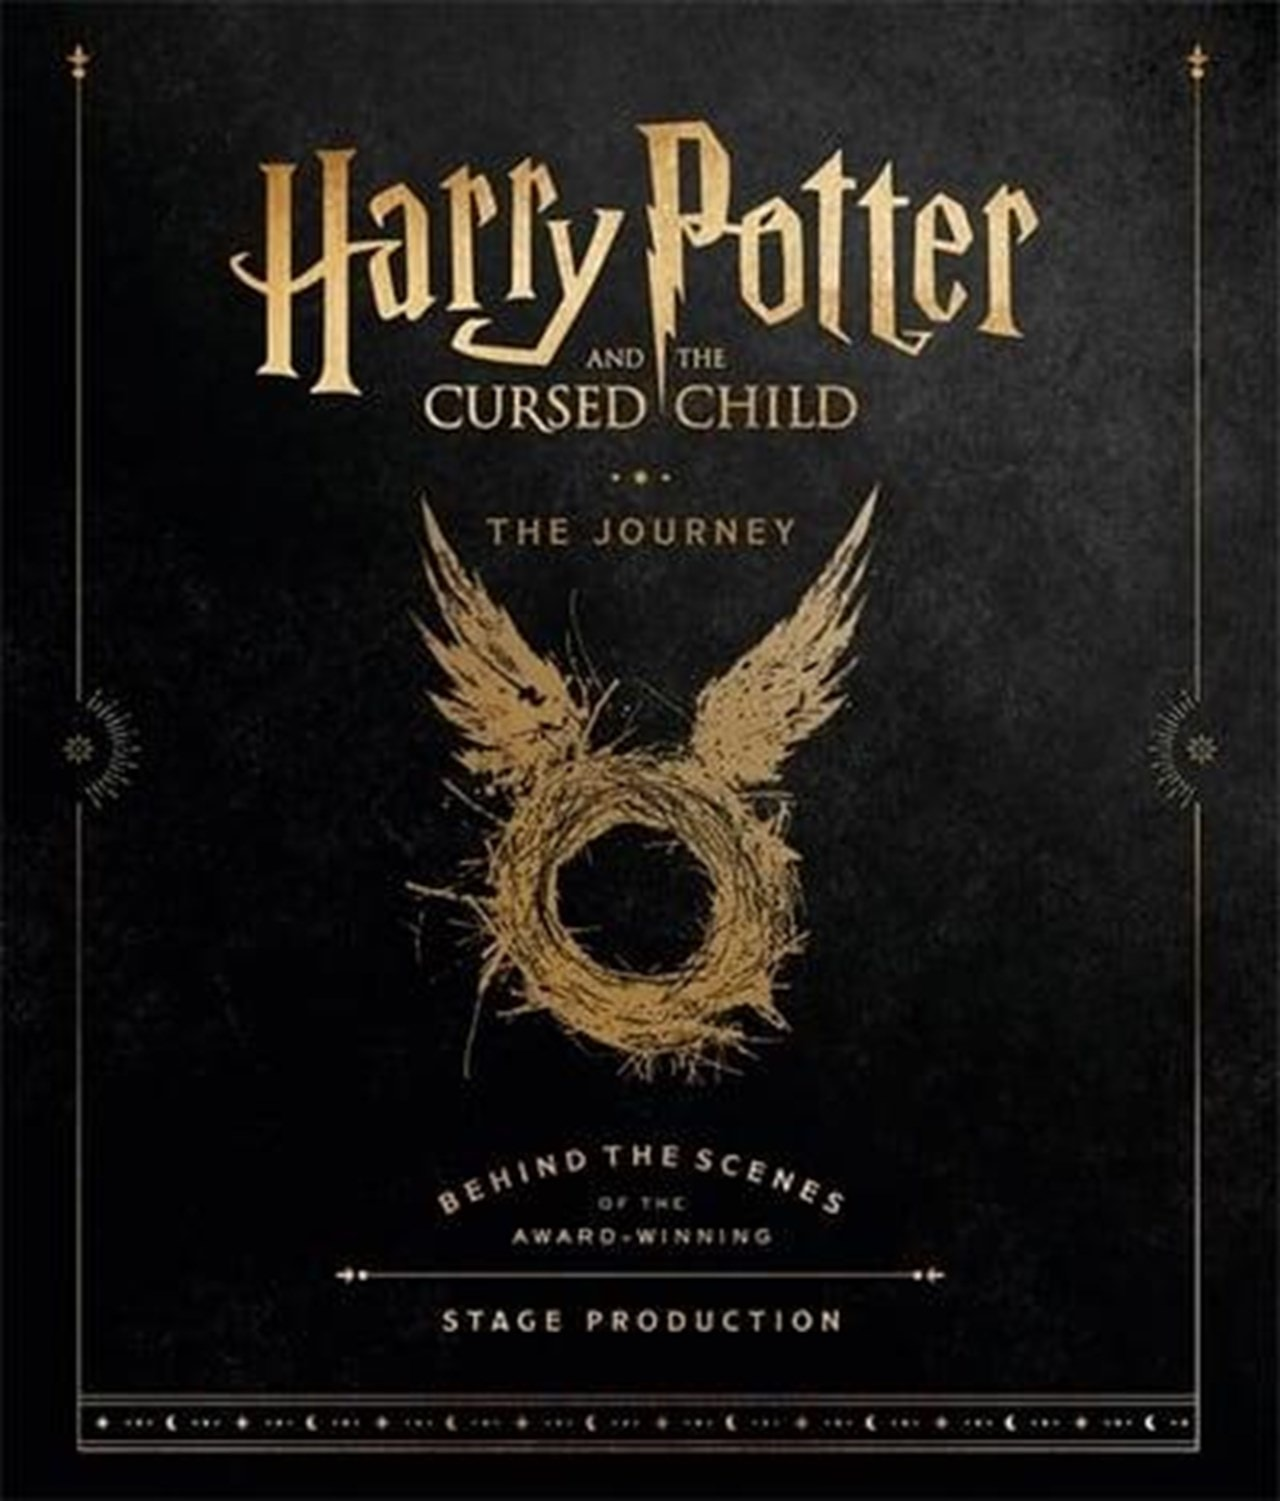 Harry Potter and the Cursed Child: The Journey Behind the Scenes of the Award-Winning Stage Producti - 1